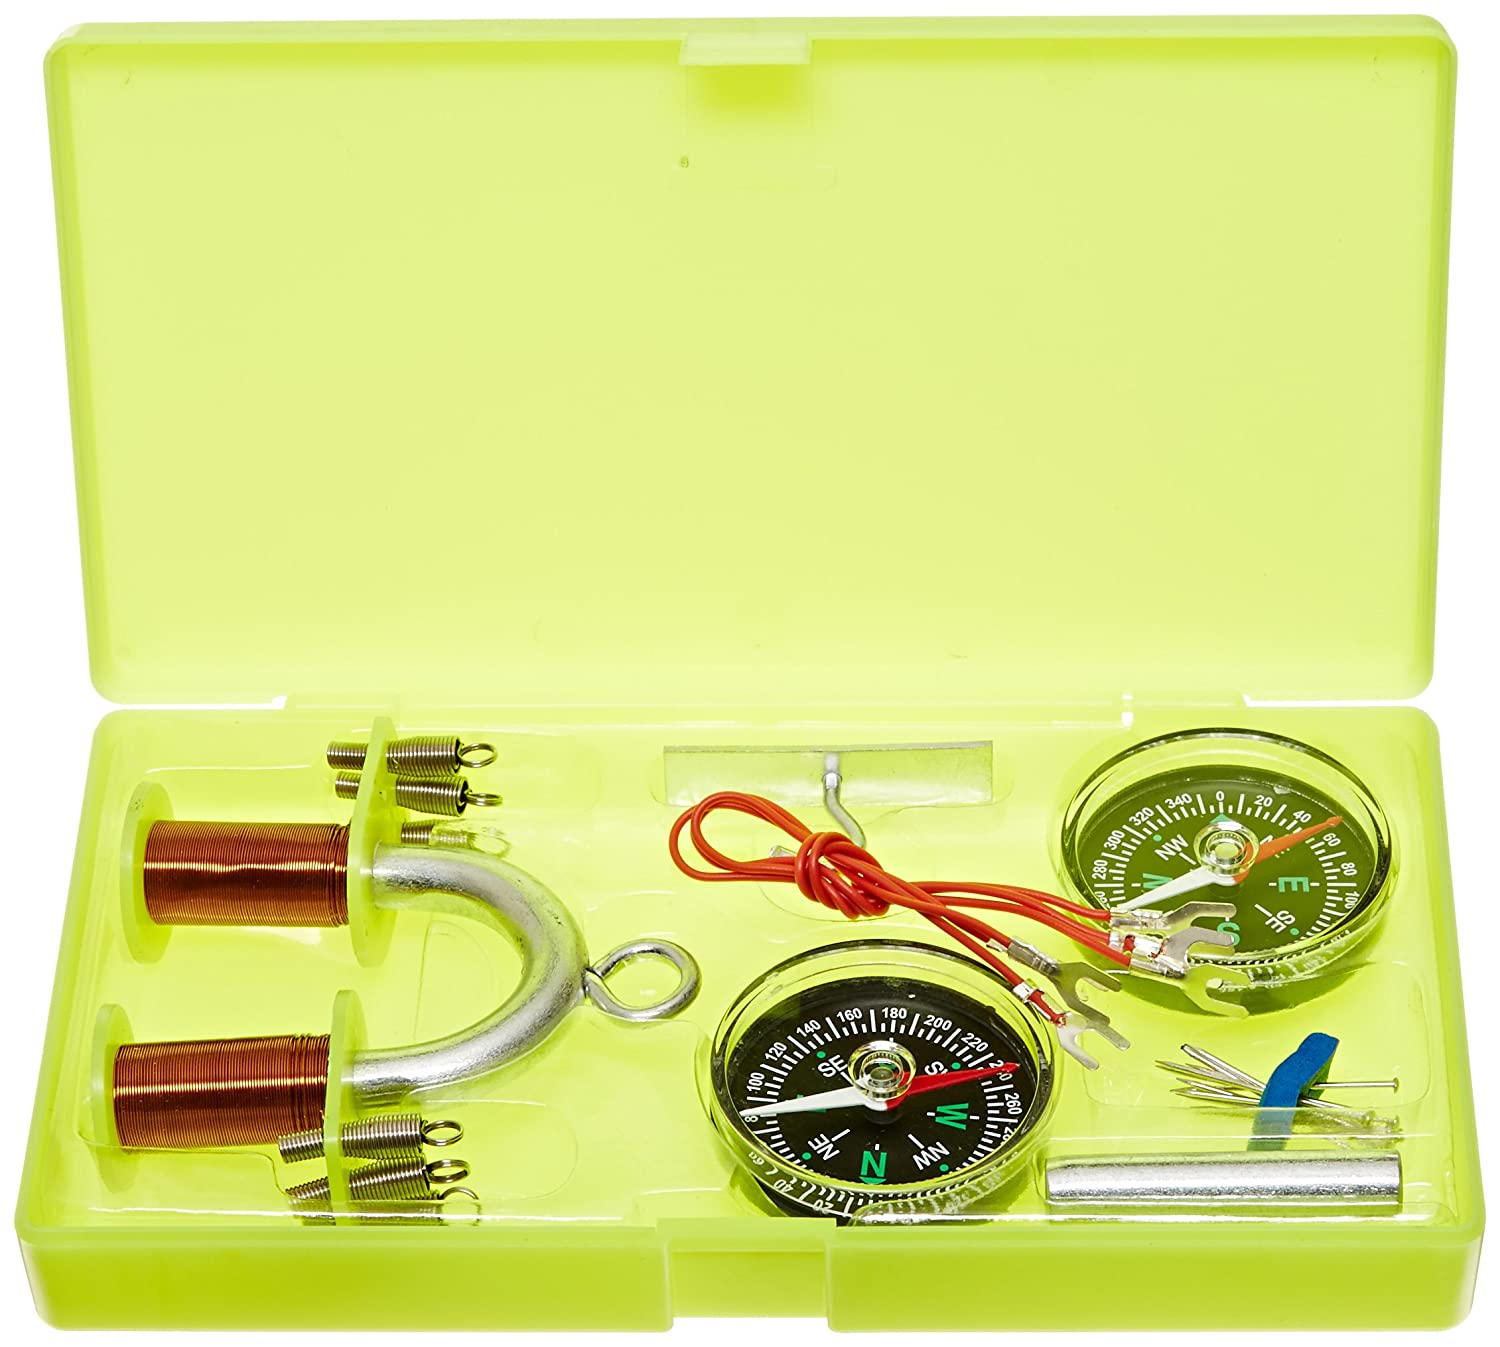 United Scientific EMKIT2 Electromagnet Kit with Instruction Manual and Plastic Storage Case